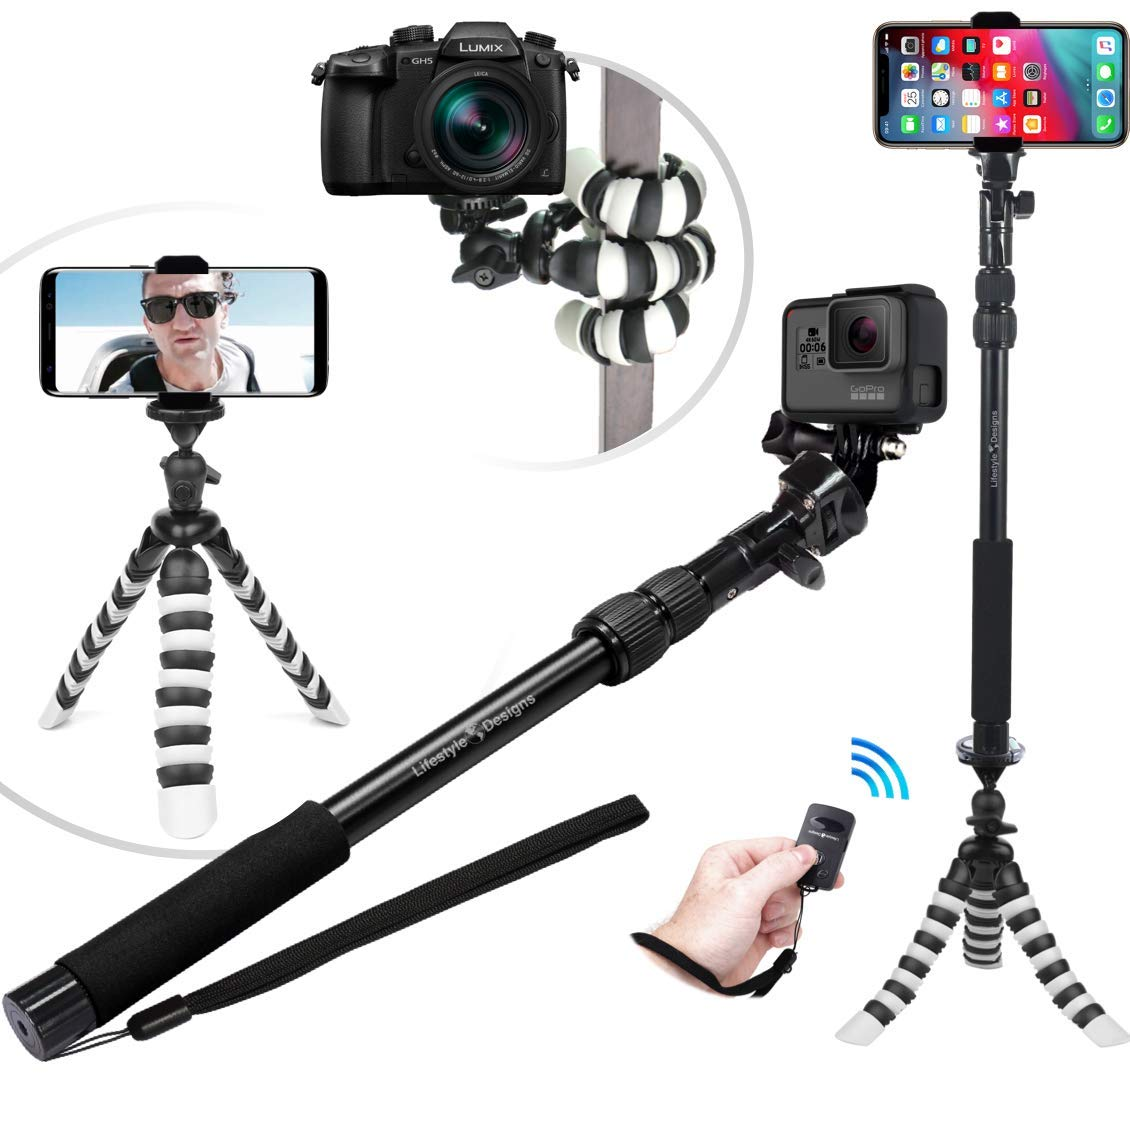 NEW HD Flexible Tripod & Selfie Stick 6-in-1 Kit w/ Bluetooth Remote – Best Video & Vlog Stand for Any Phone, GoPro or Camera: iPhone XS Max / XS / X / 8 / 7 / 6 / Plus, Samsung S9, Hero 7, etc.